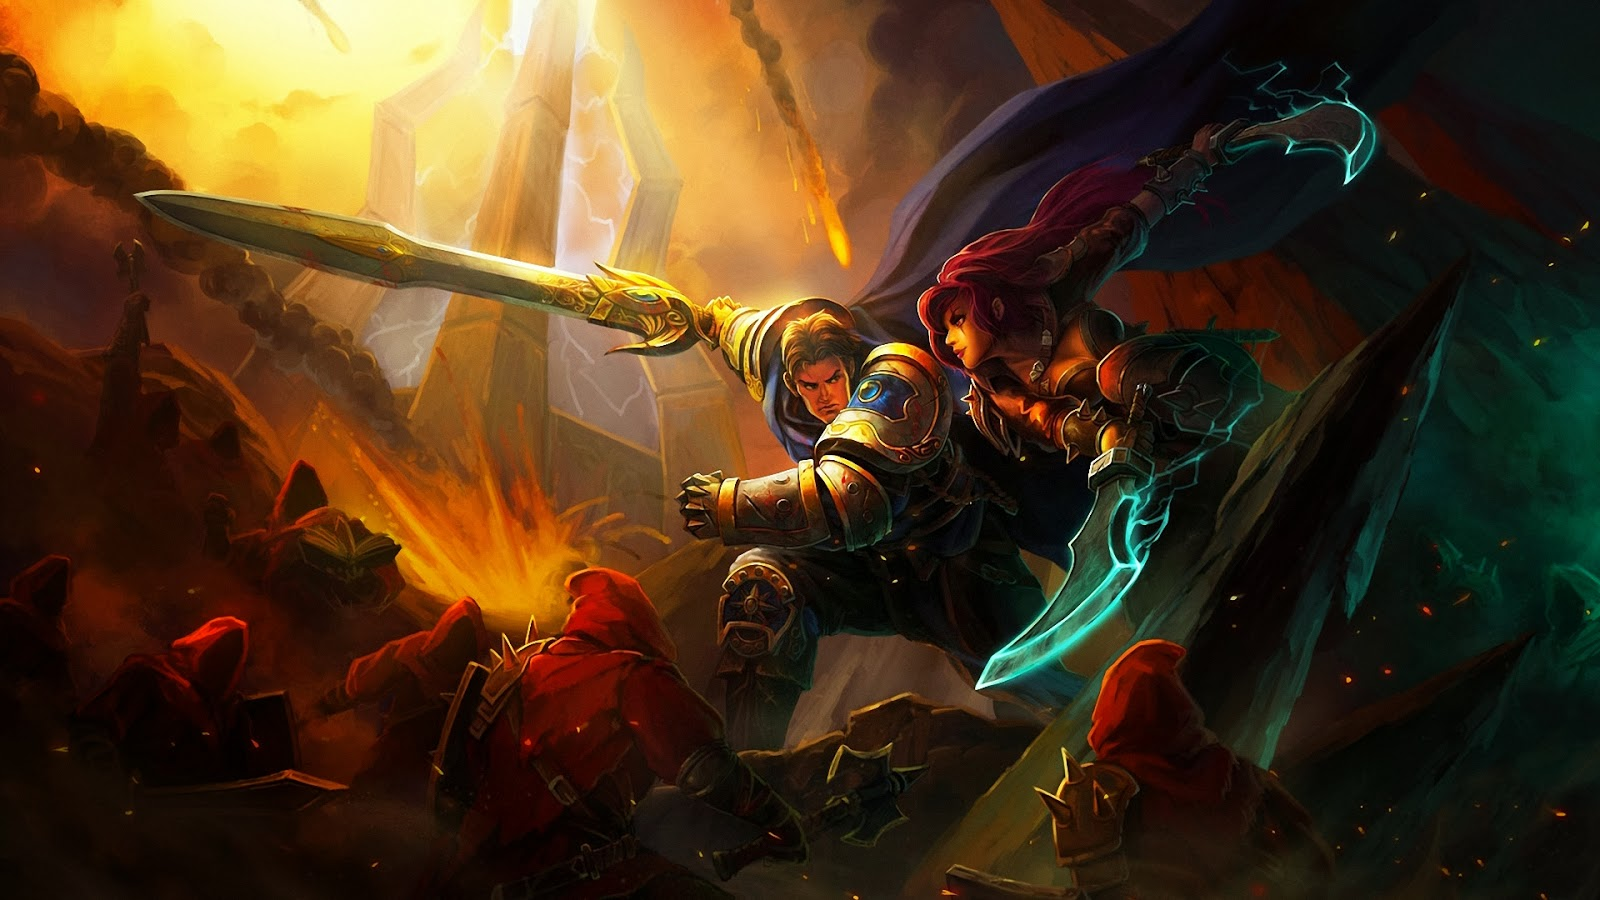 Garen League Of Legends Wallpaper Garen Desktop Wallpaper